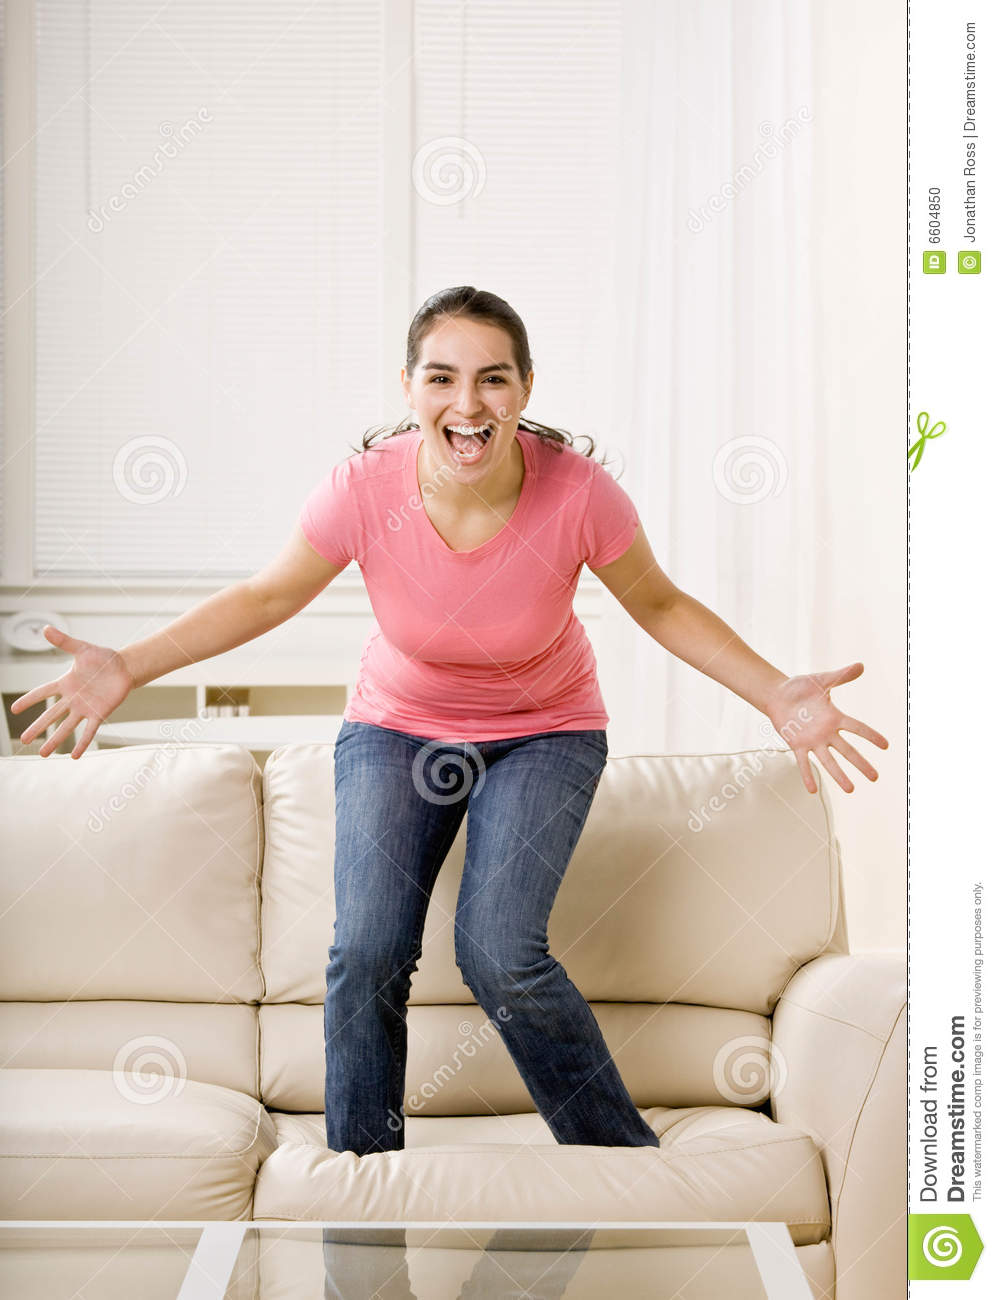 Young Woman Jumping On Couch Stock Photo Image 6604850